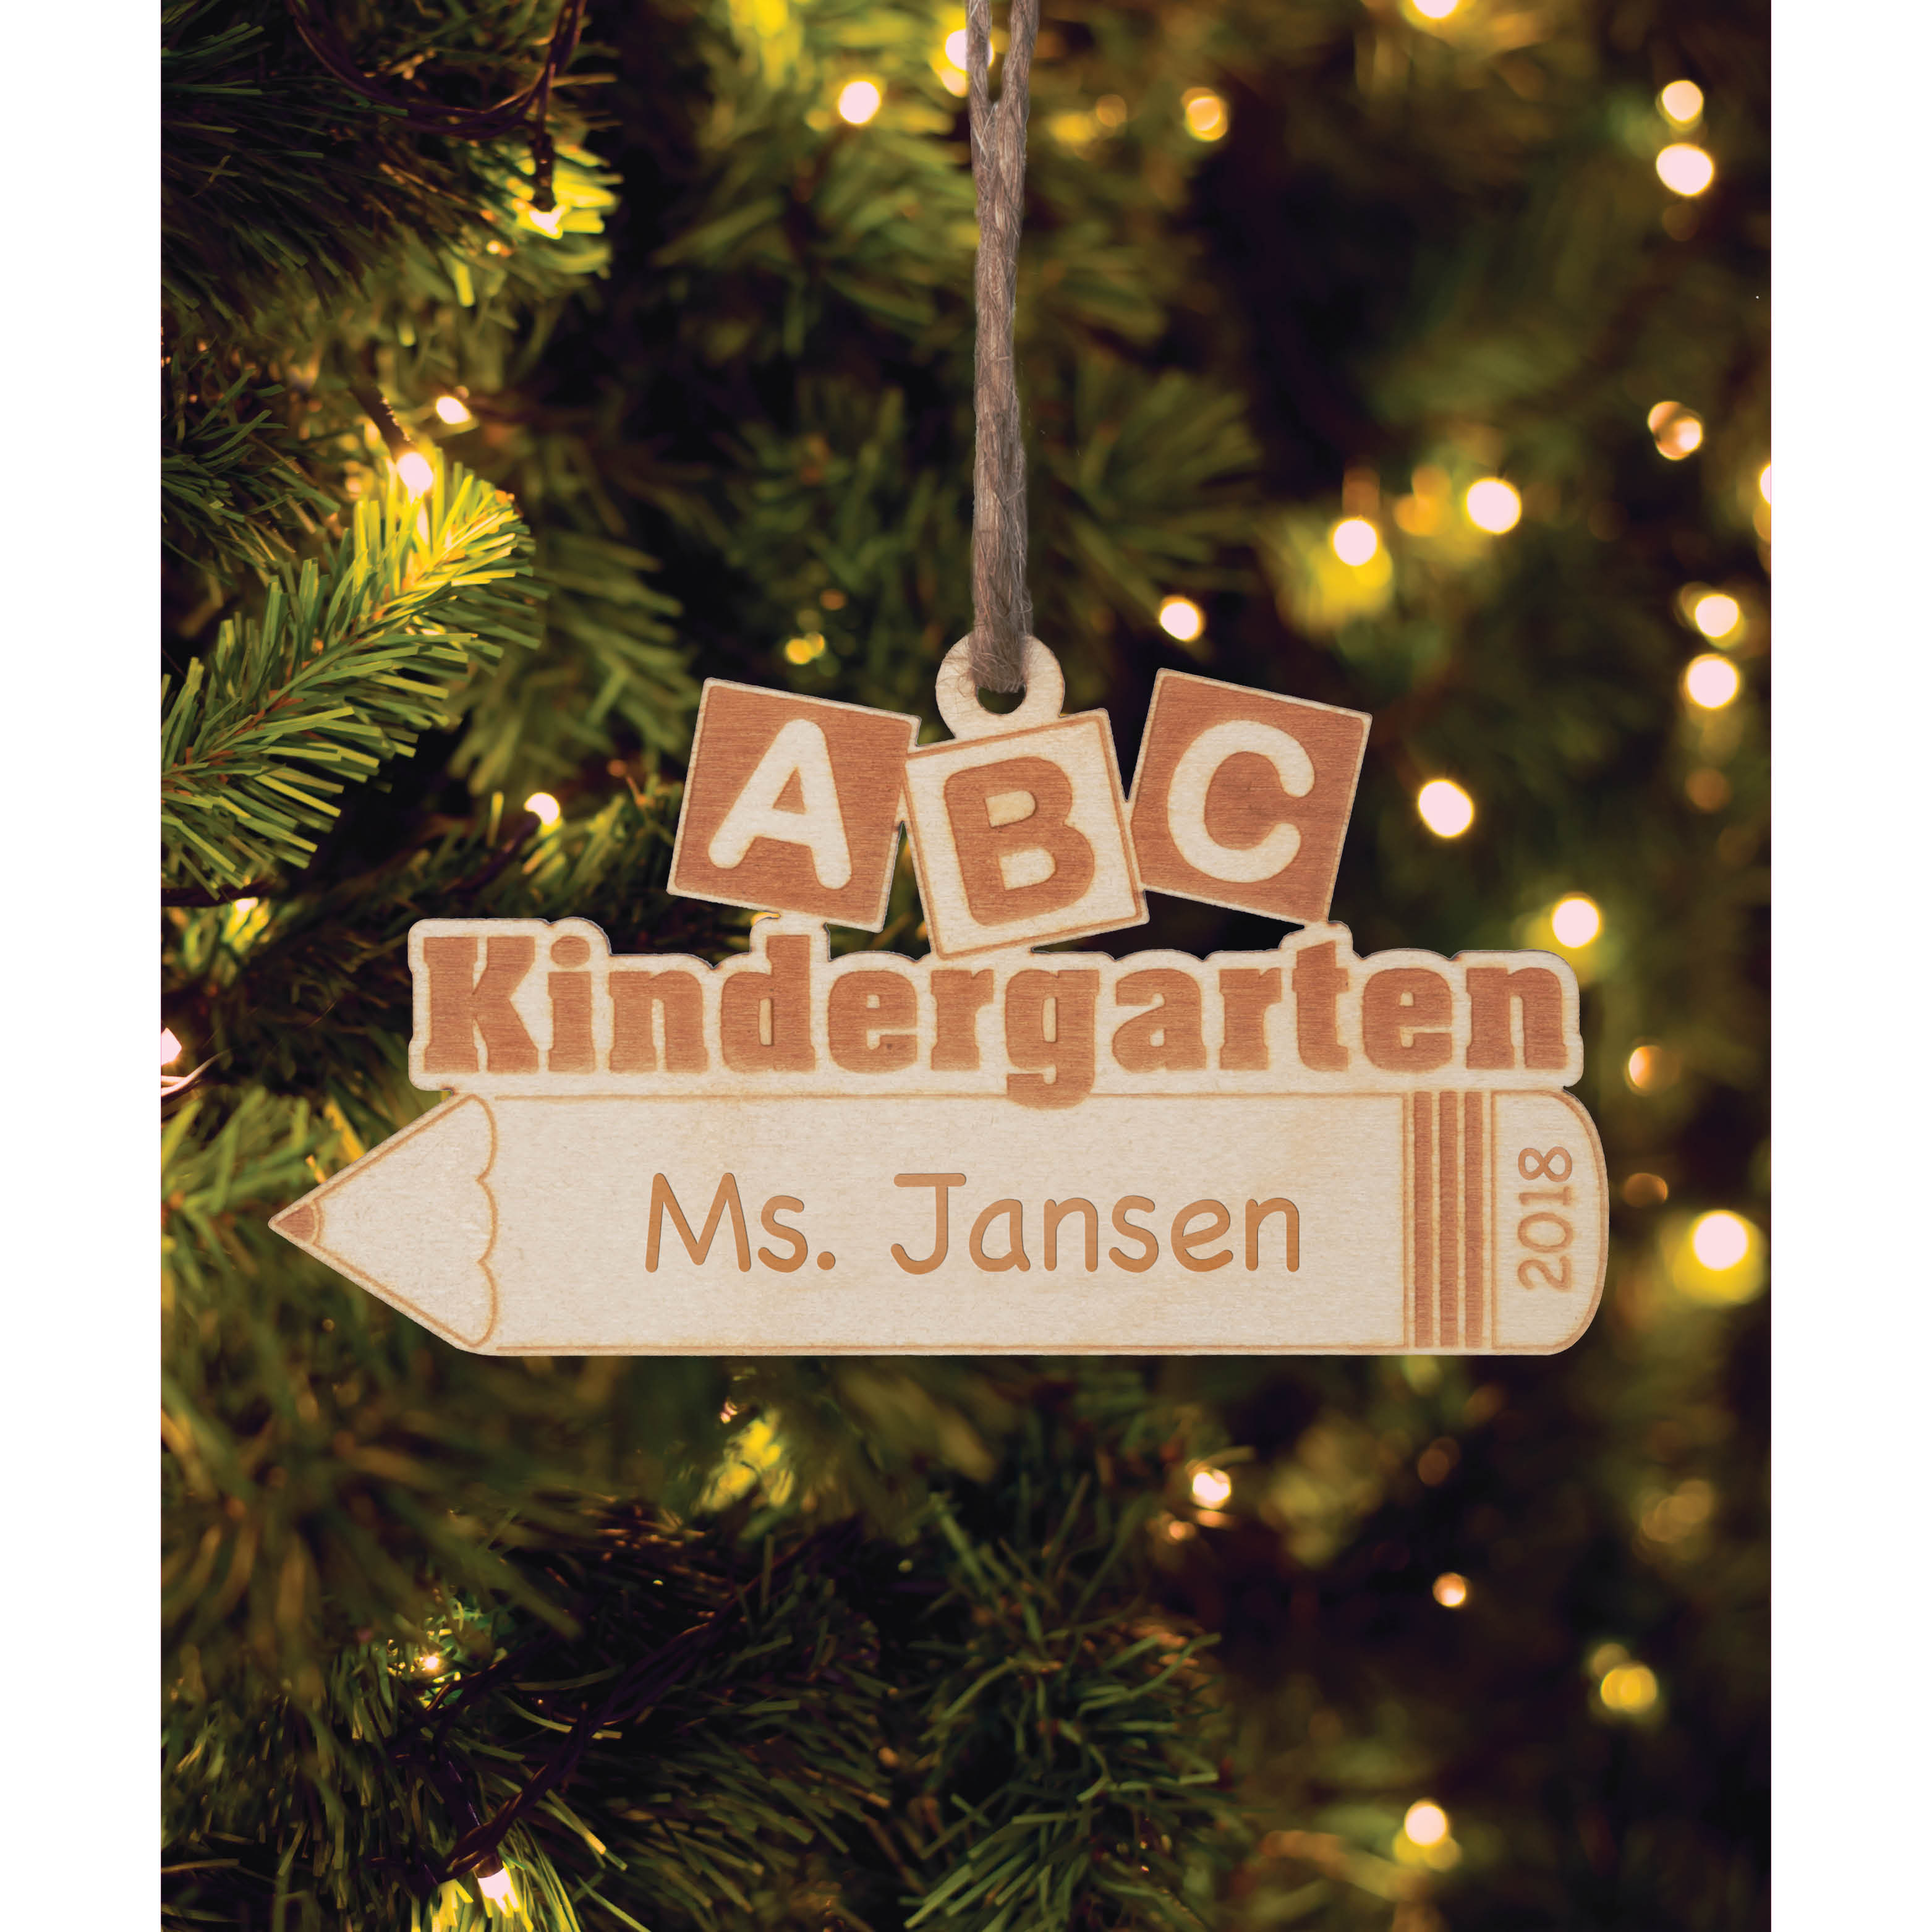 Personalized Wood Teacher Christmas Ornament - ABC Kindergarten Teacher